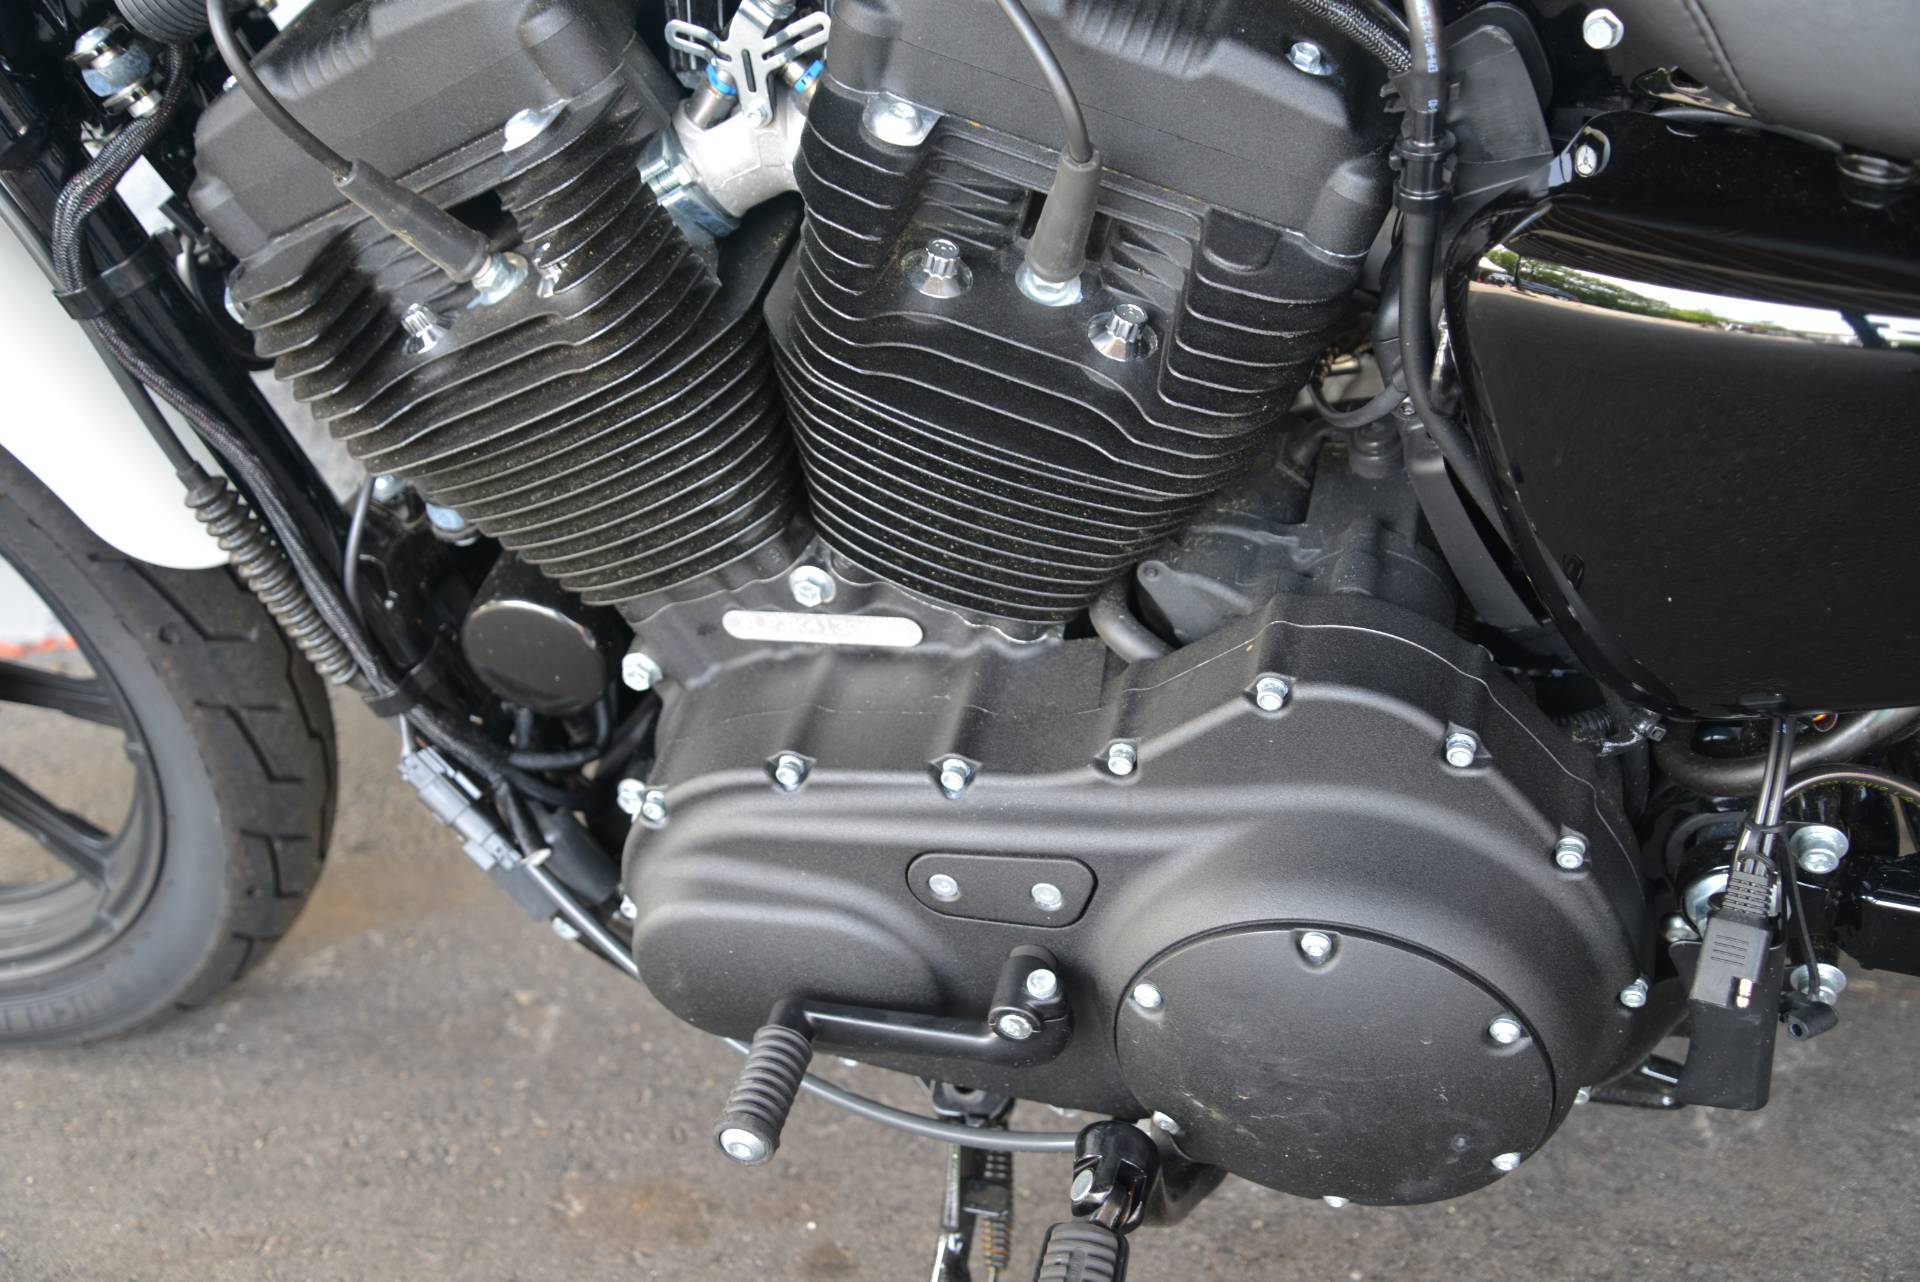 2019 Harley-Davidson IRON 1200 in Lakewood, New Jersey - Photo 14